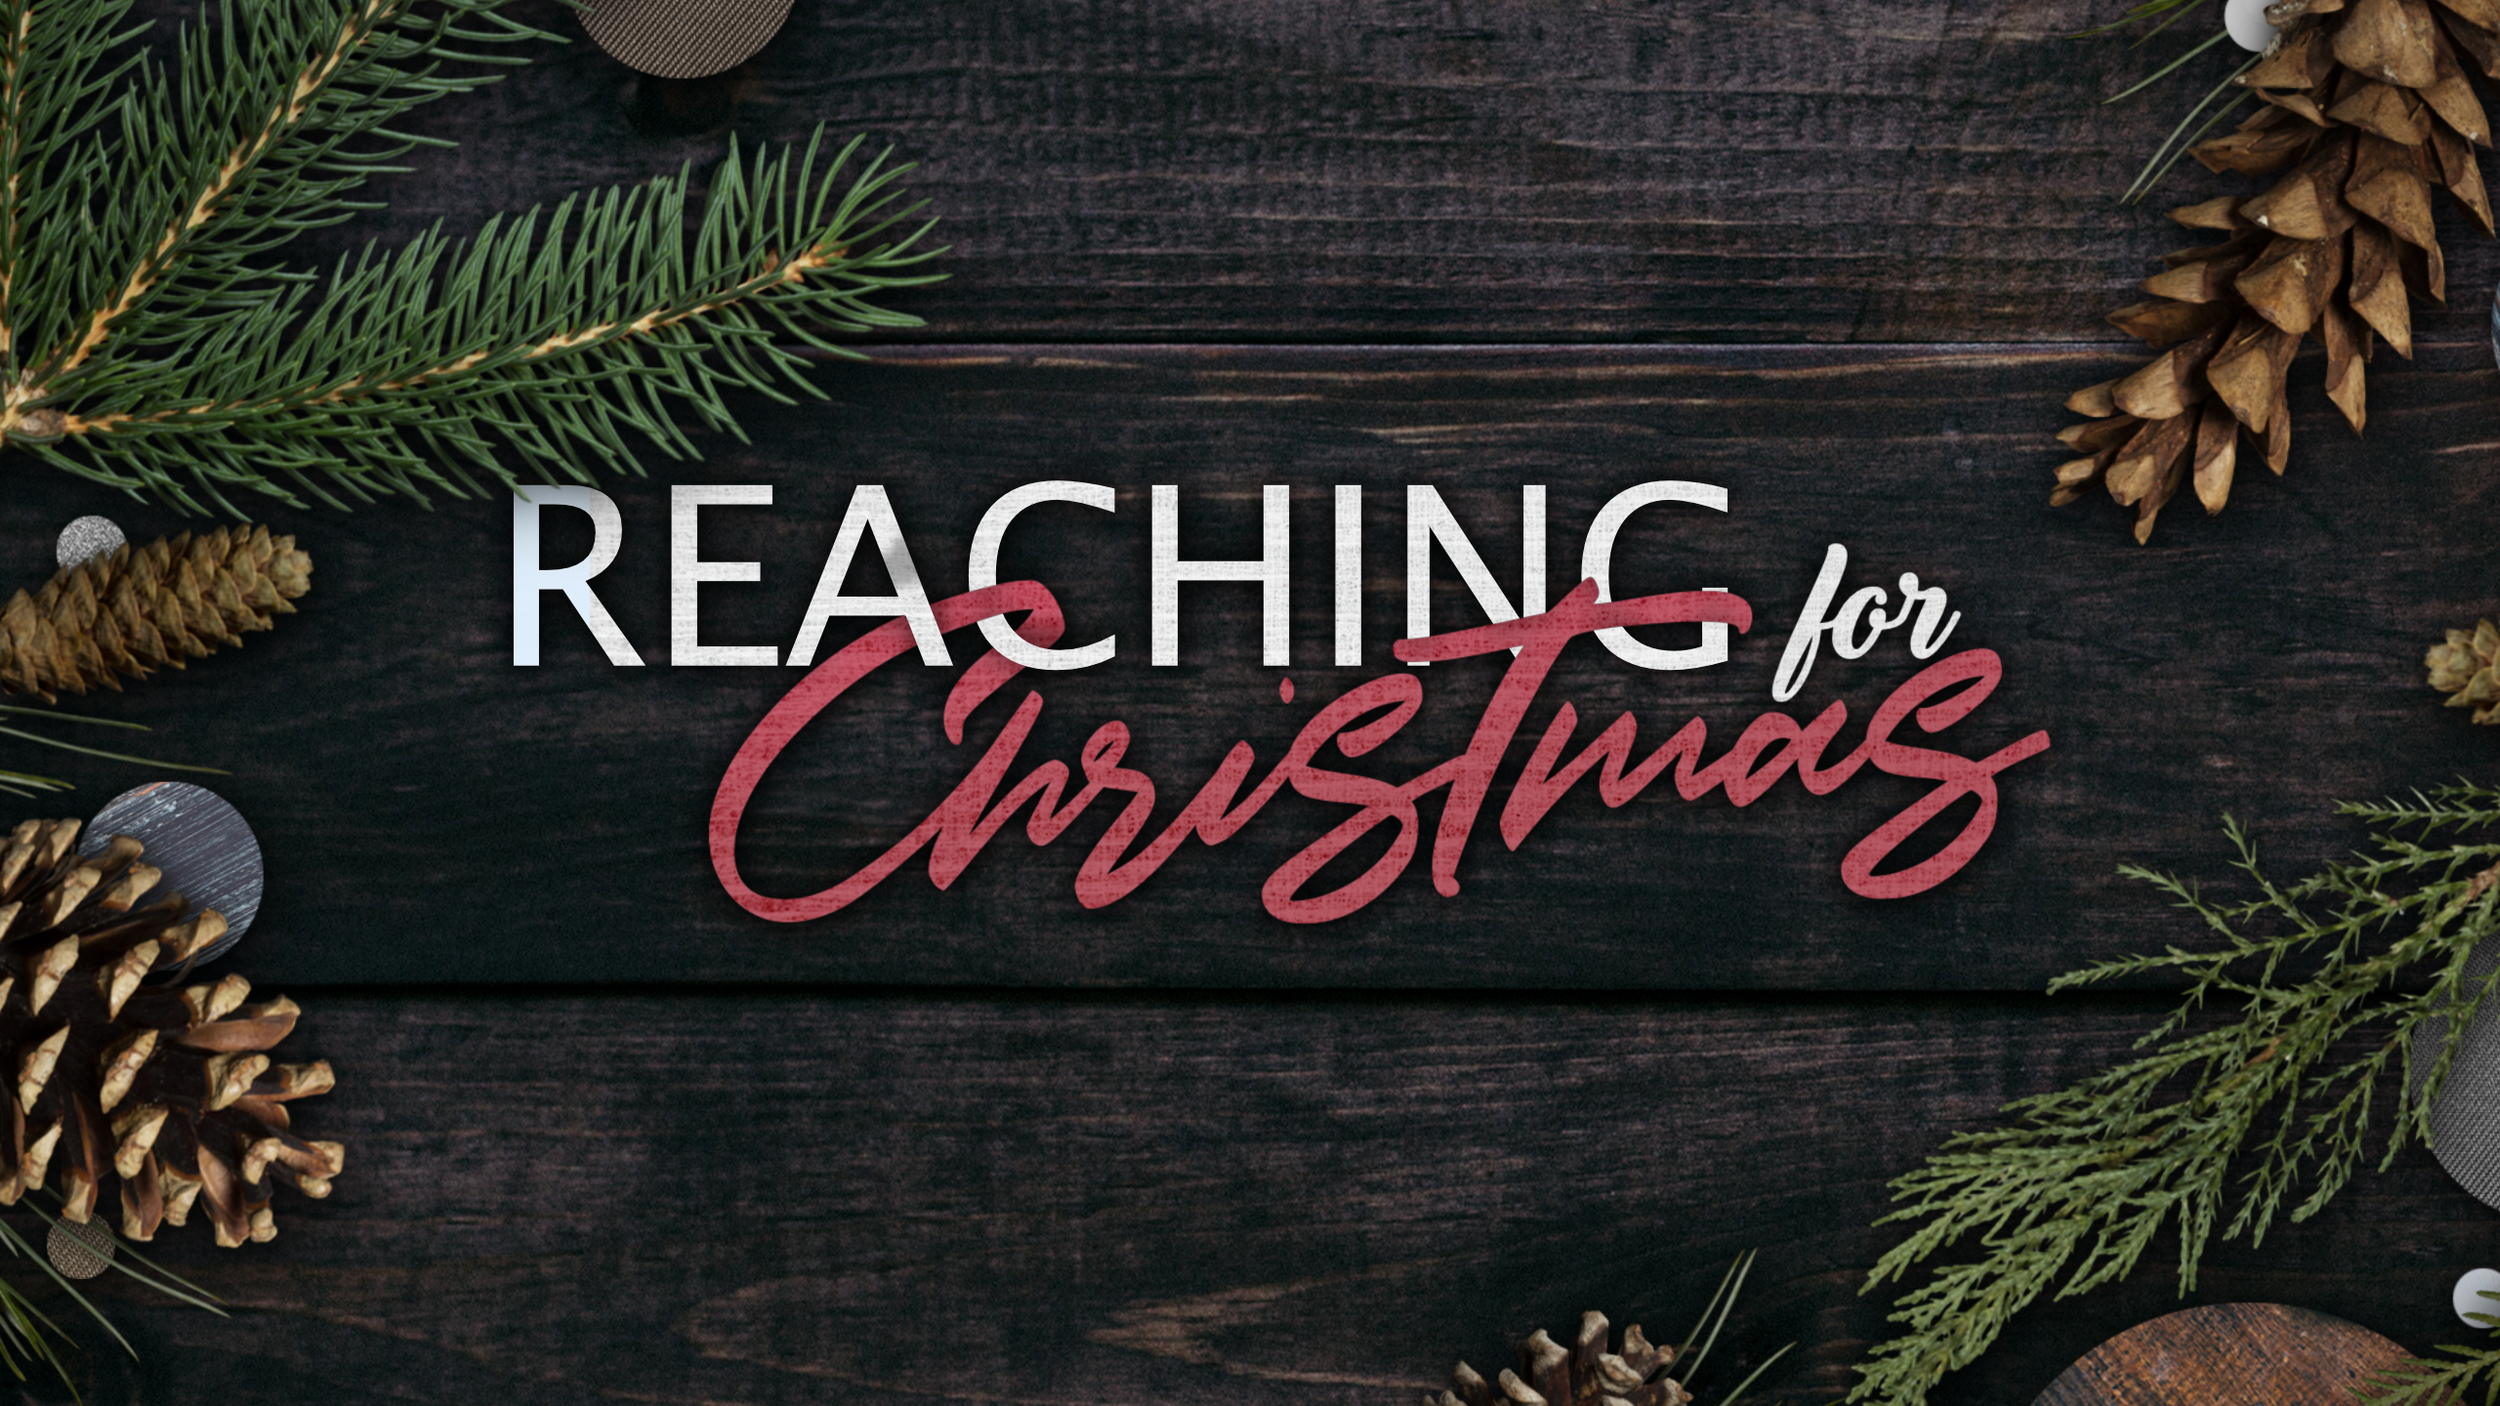 Reaching for Christmas -